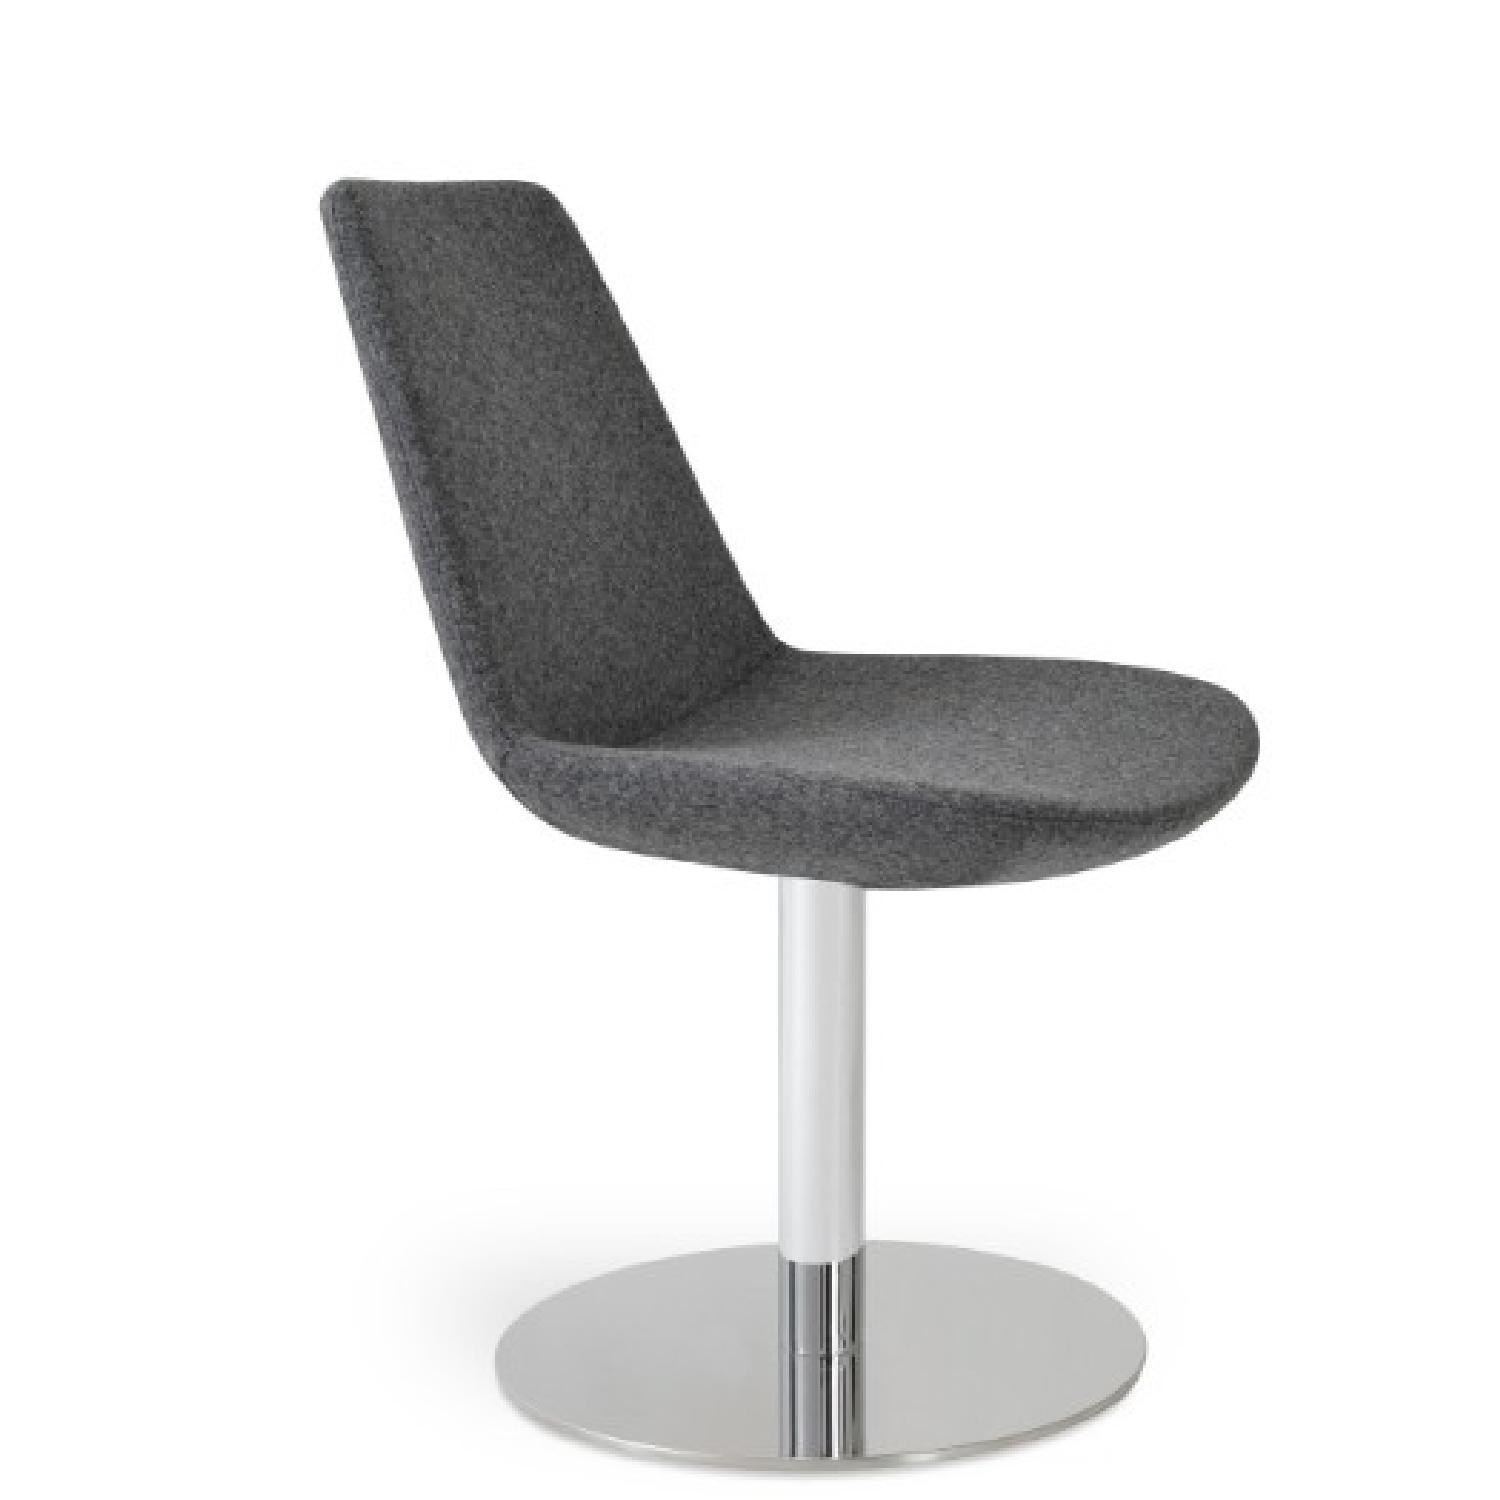 SohoConcept Swivel Accent/Dining Chair in Light Wool Fabric  - image-3